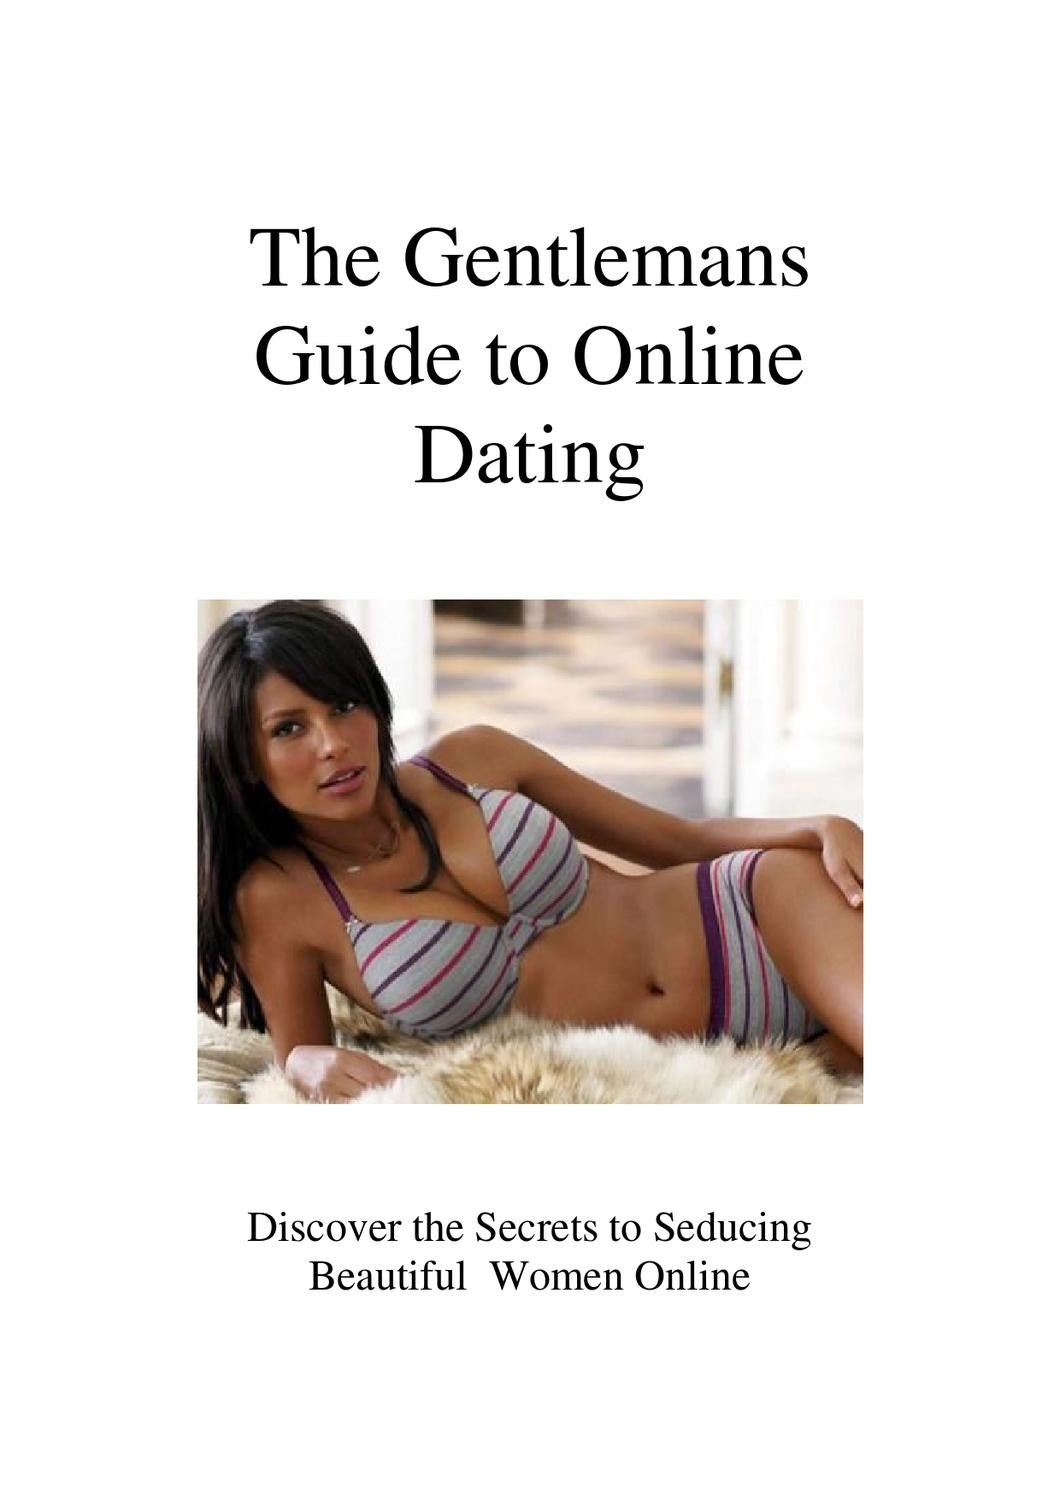 My girlfriend is addicted to hookup sites